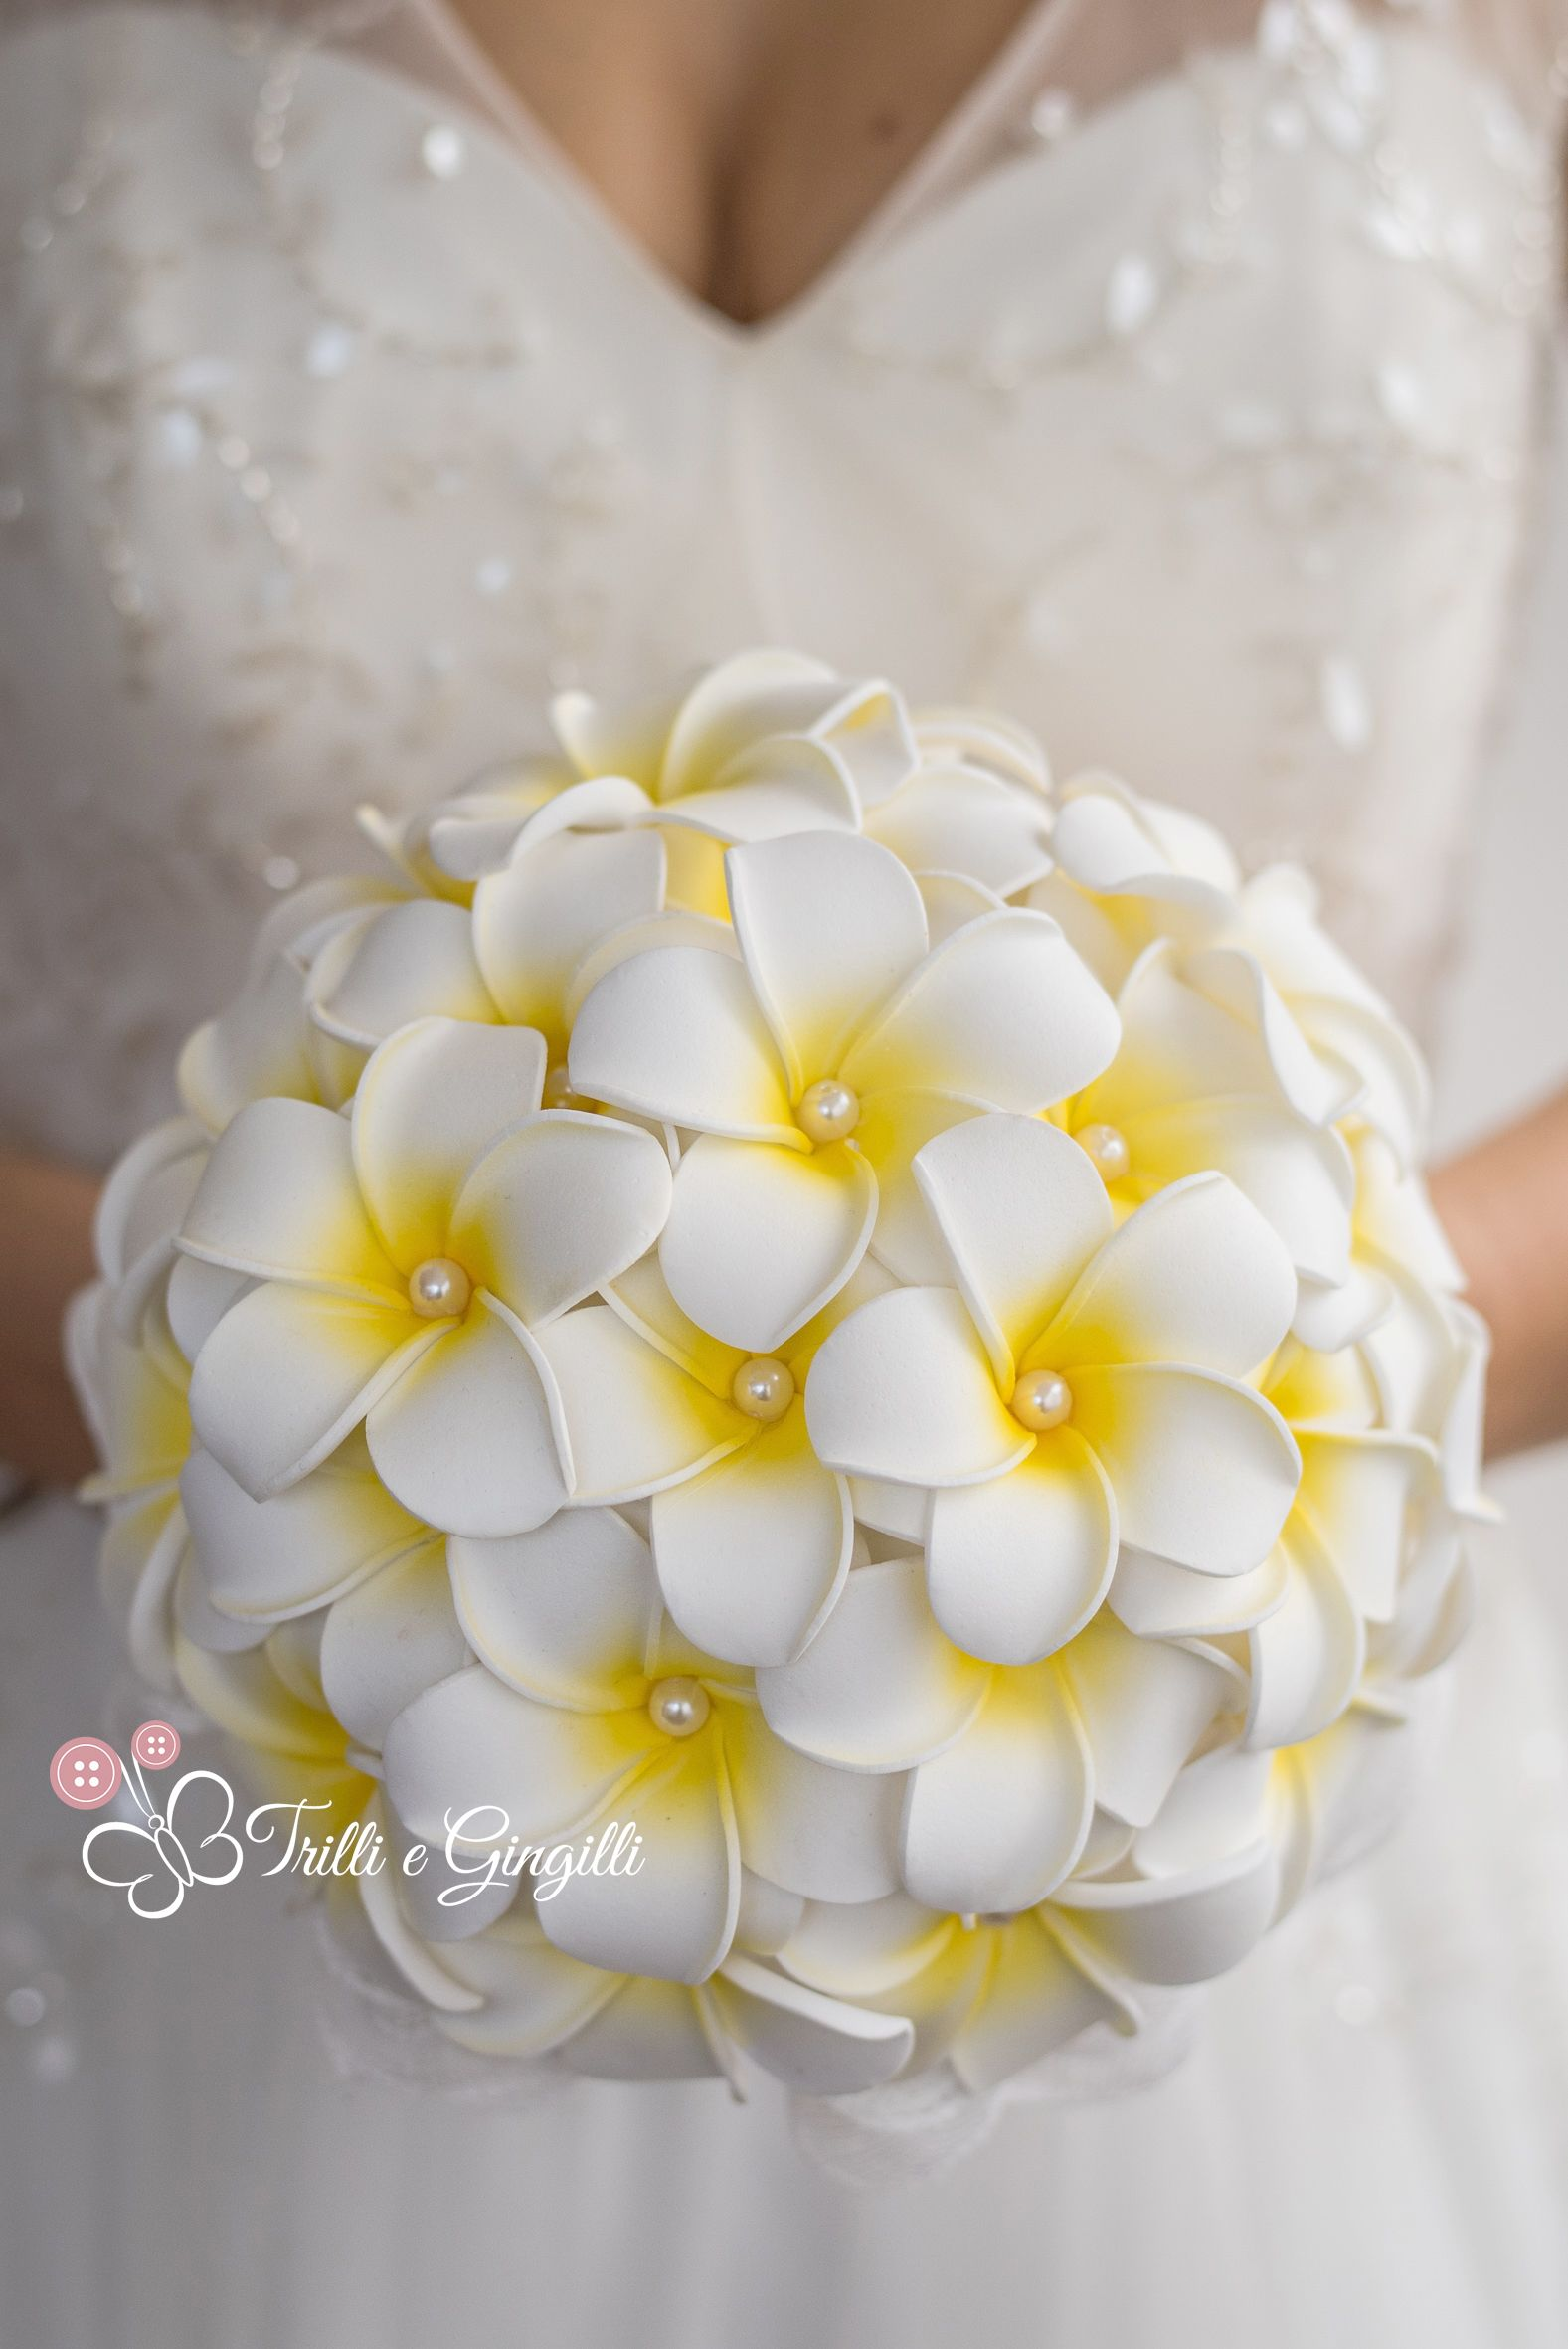 Bouquet Yellow Frangipani Plumeria By Trilli E Gingilli Prom Flowers Bouquet Wedding Bouquets Sets Flower Bouquet Wedding